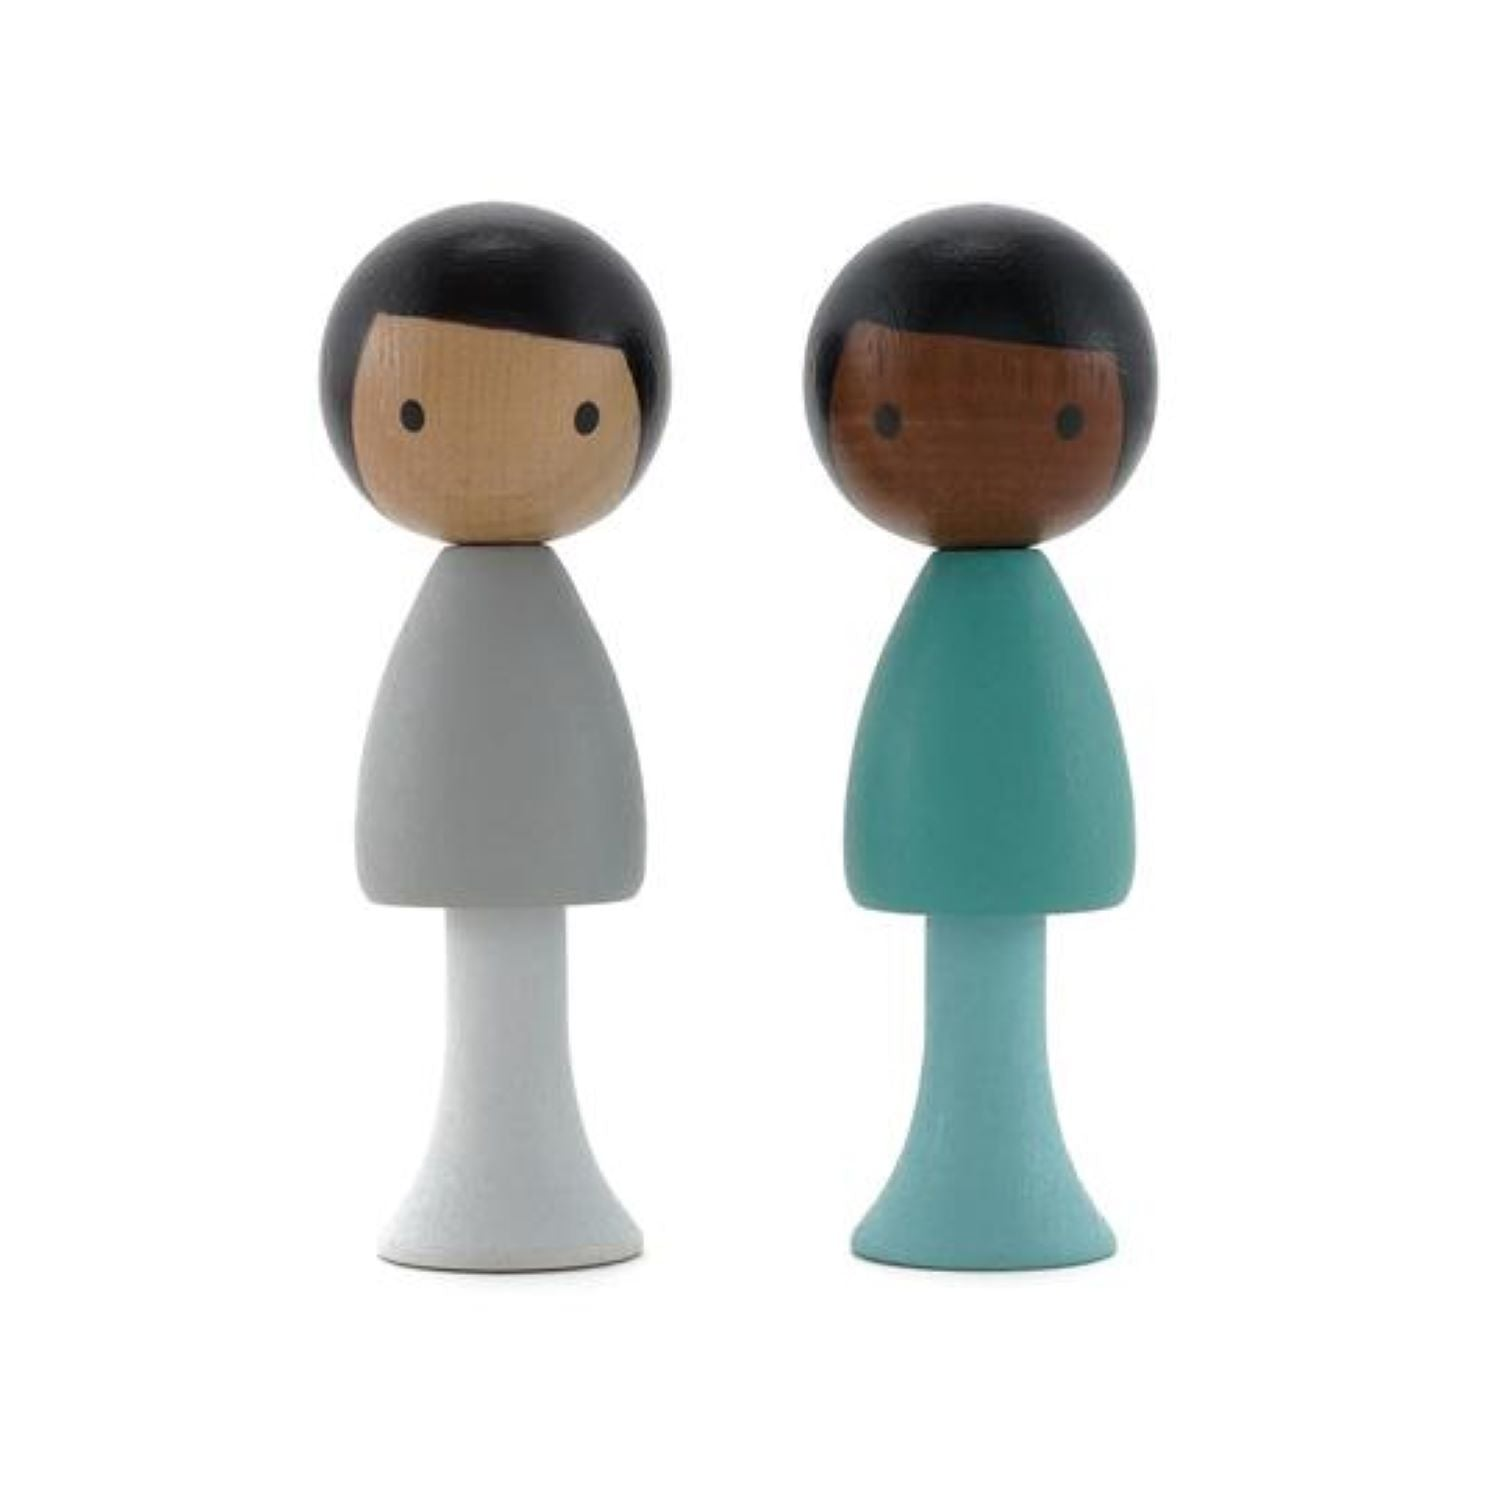 Clicques - Sam and Justin Wooden Figurines